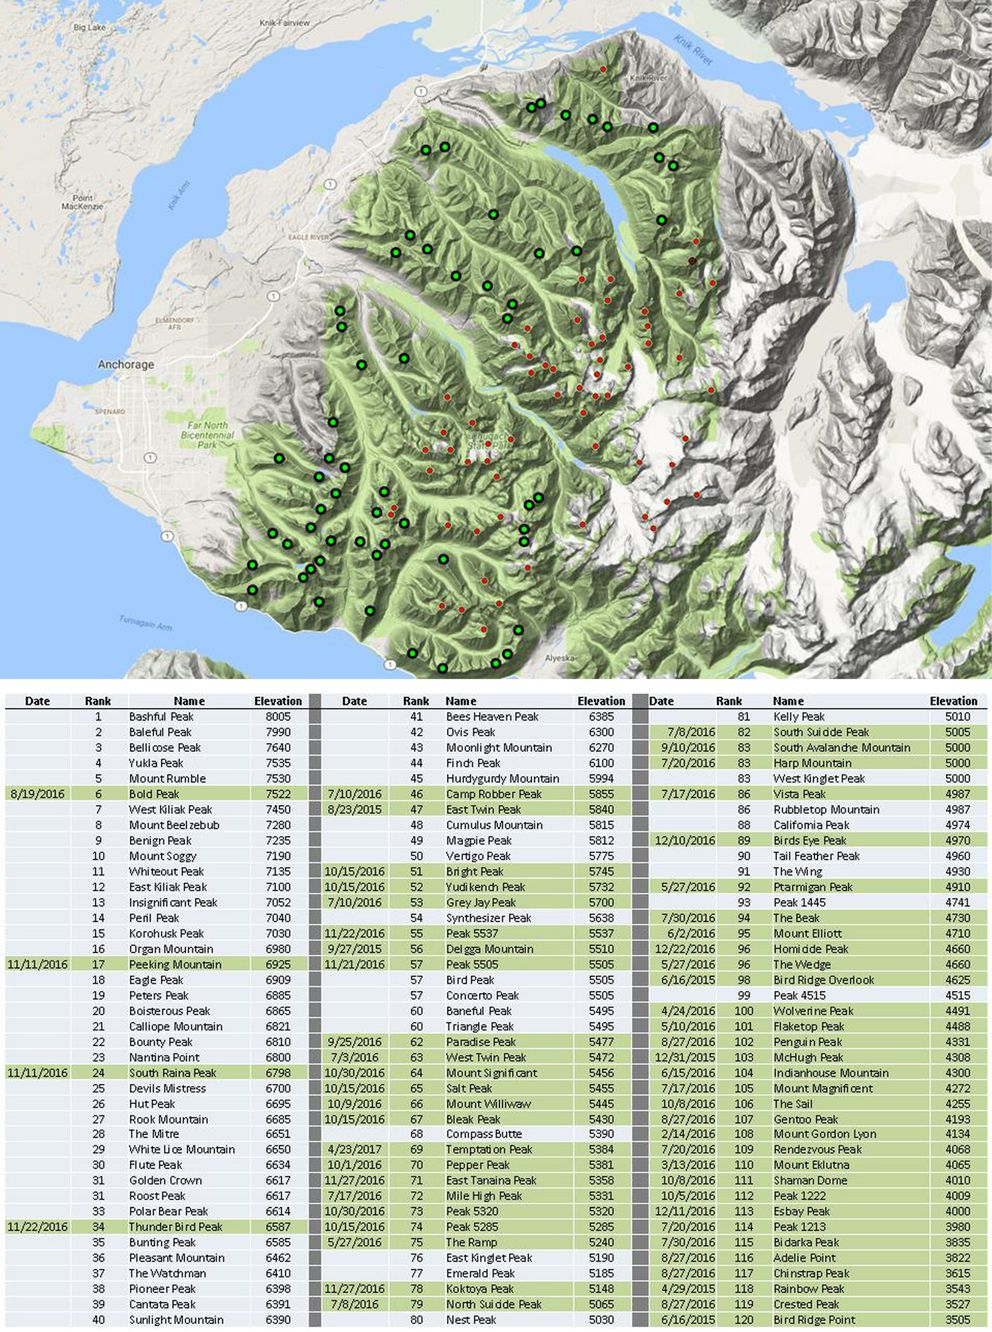 Gerrit Verbeek's progress on climbing all 120 peaks in Chugach State Park as of Tuesday, May 16, 2017. (Courtesy Gerrit Verbeek)